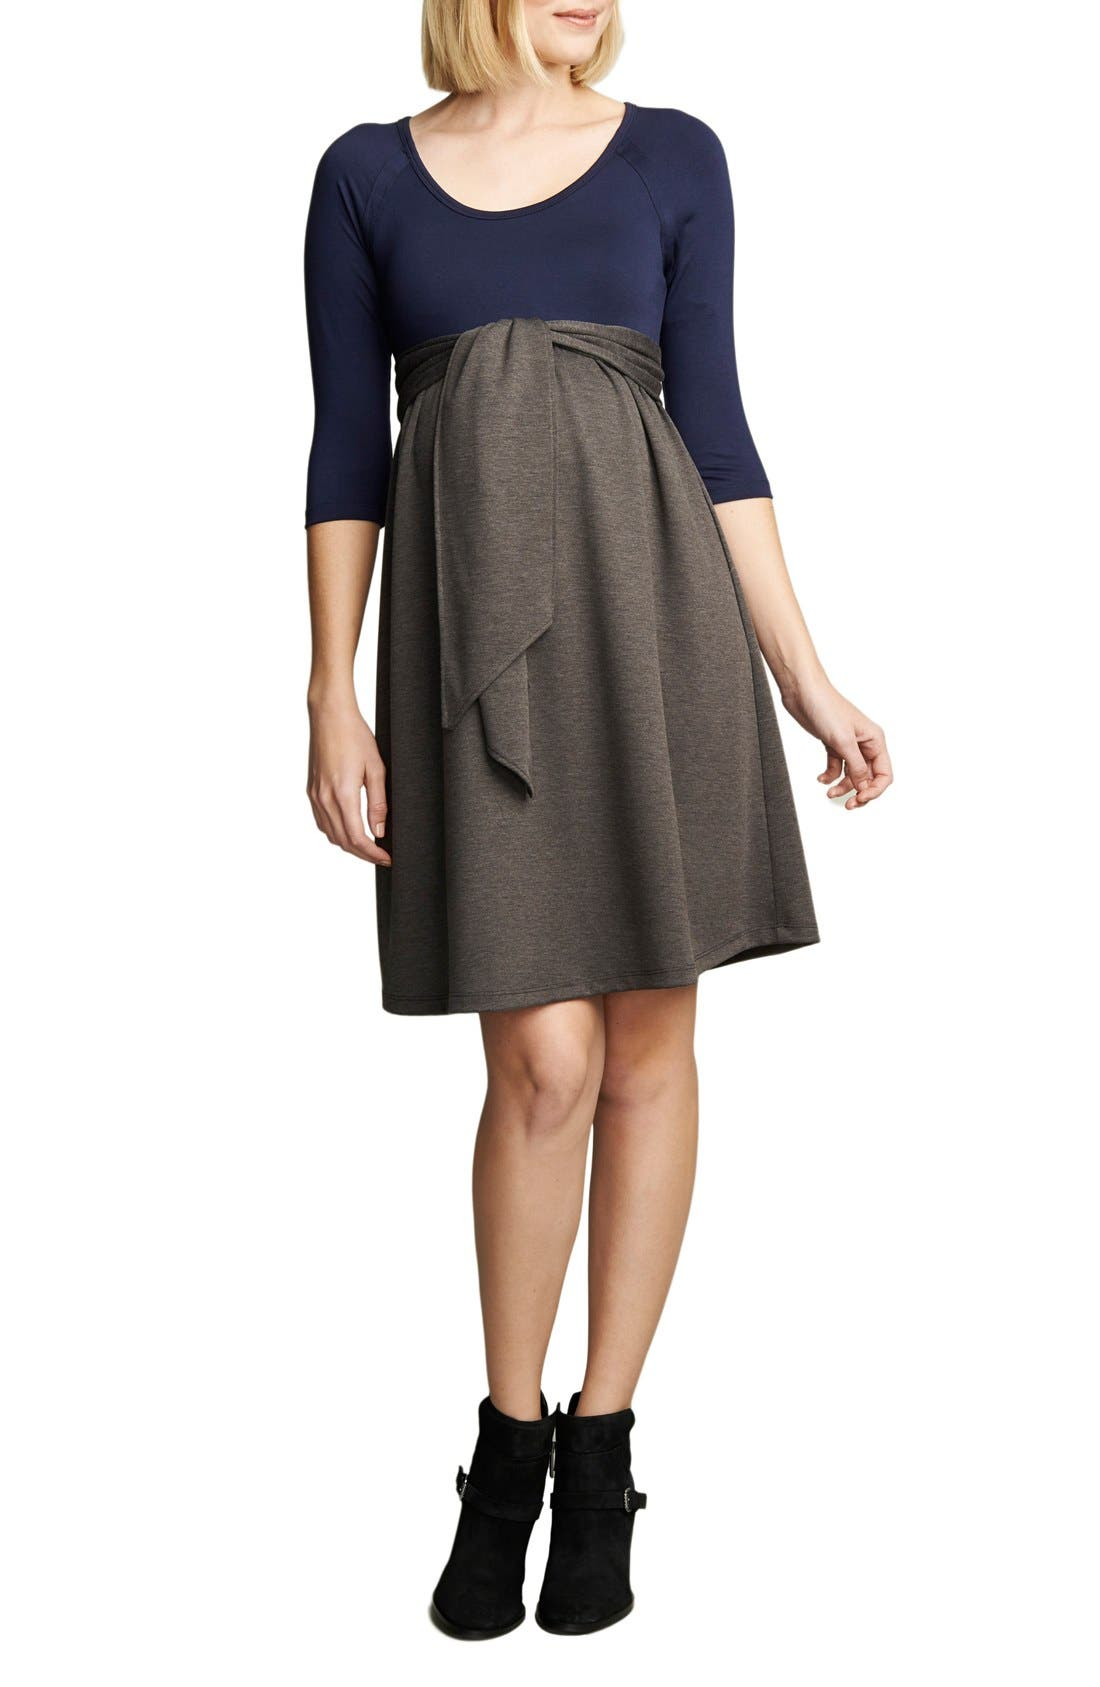 Tie Front Maternity Dress,                         Main,                         color, Navy/Charcoal